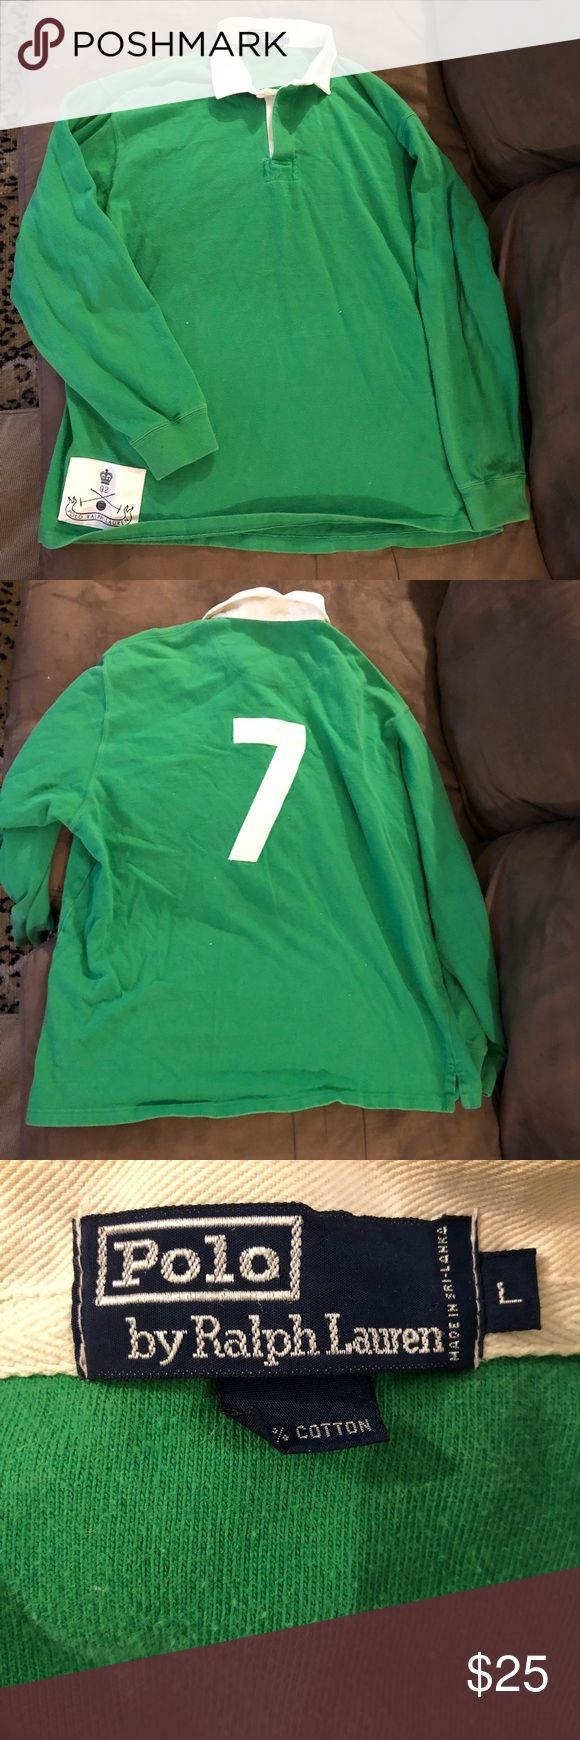 Polo Ralph Lauren Green Rugby Shirt L Polo Ralph Lauren Solid Green With White 7 Long Sleeve Rugby Shirt size L! Great condition! Please make reasonable offers and bundle! Ask questions! :) Polo by Ralph Lauren Shirts